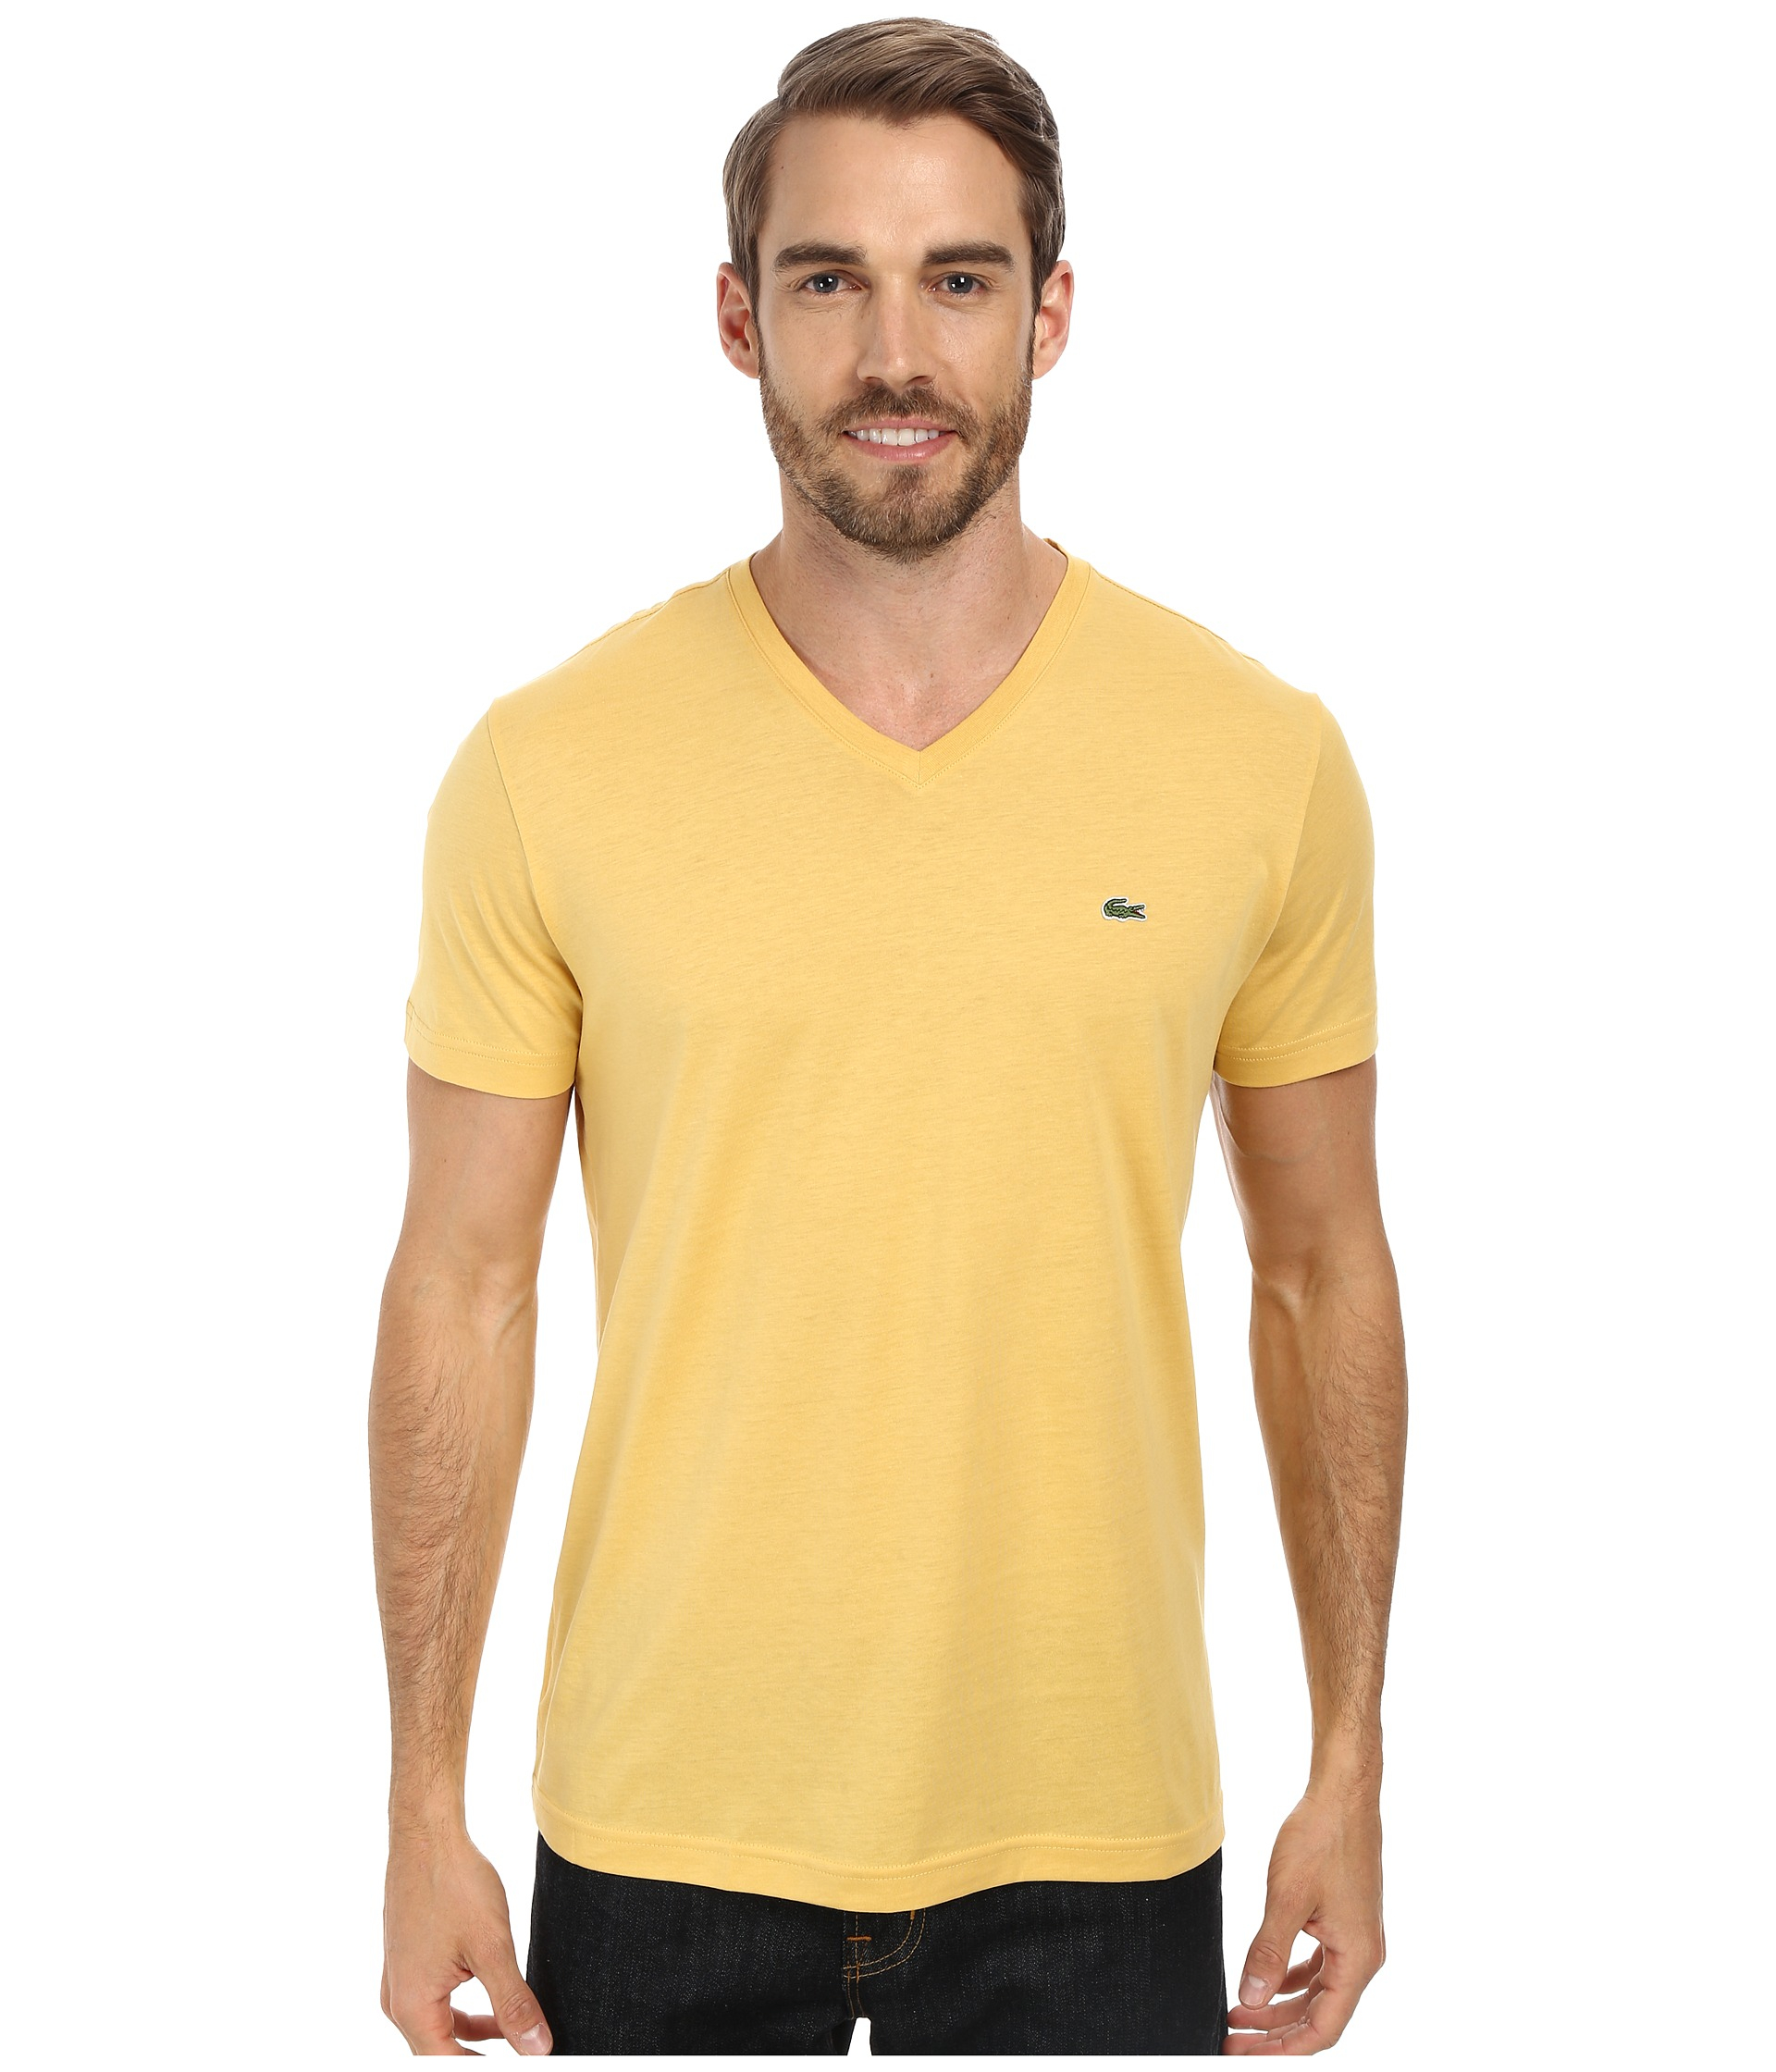 a6166707 Lacoste S/S Pima Jersey V-Neck T-Shirt in Yellow - Lyst